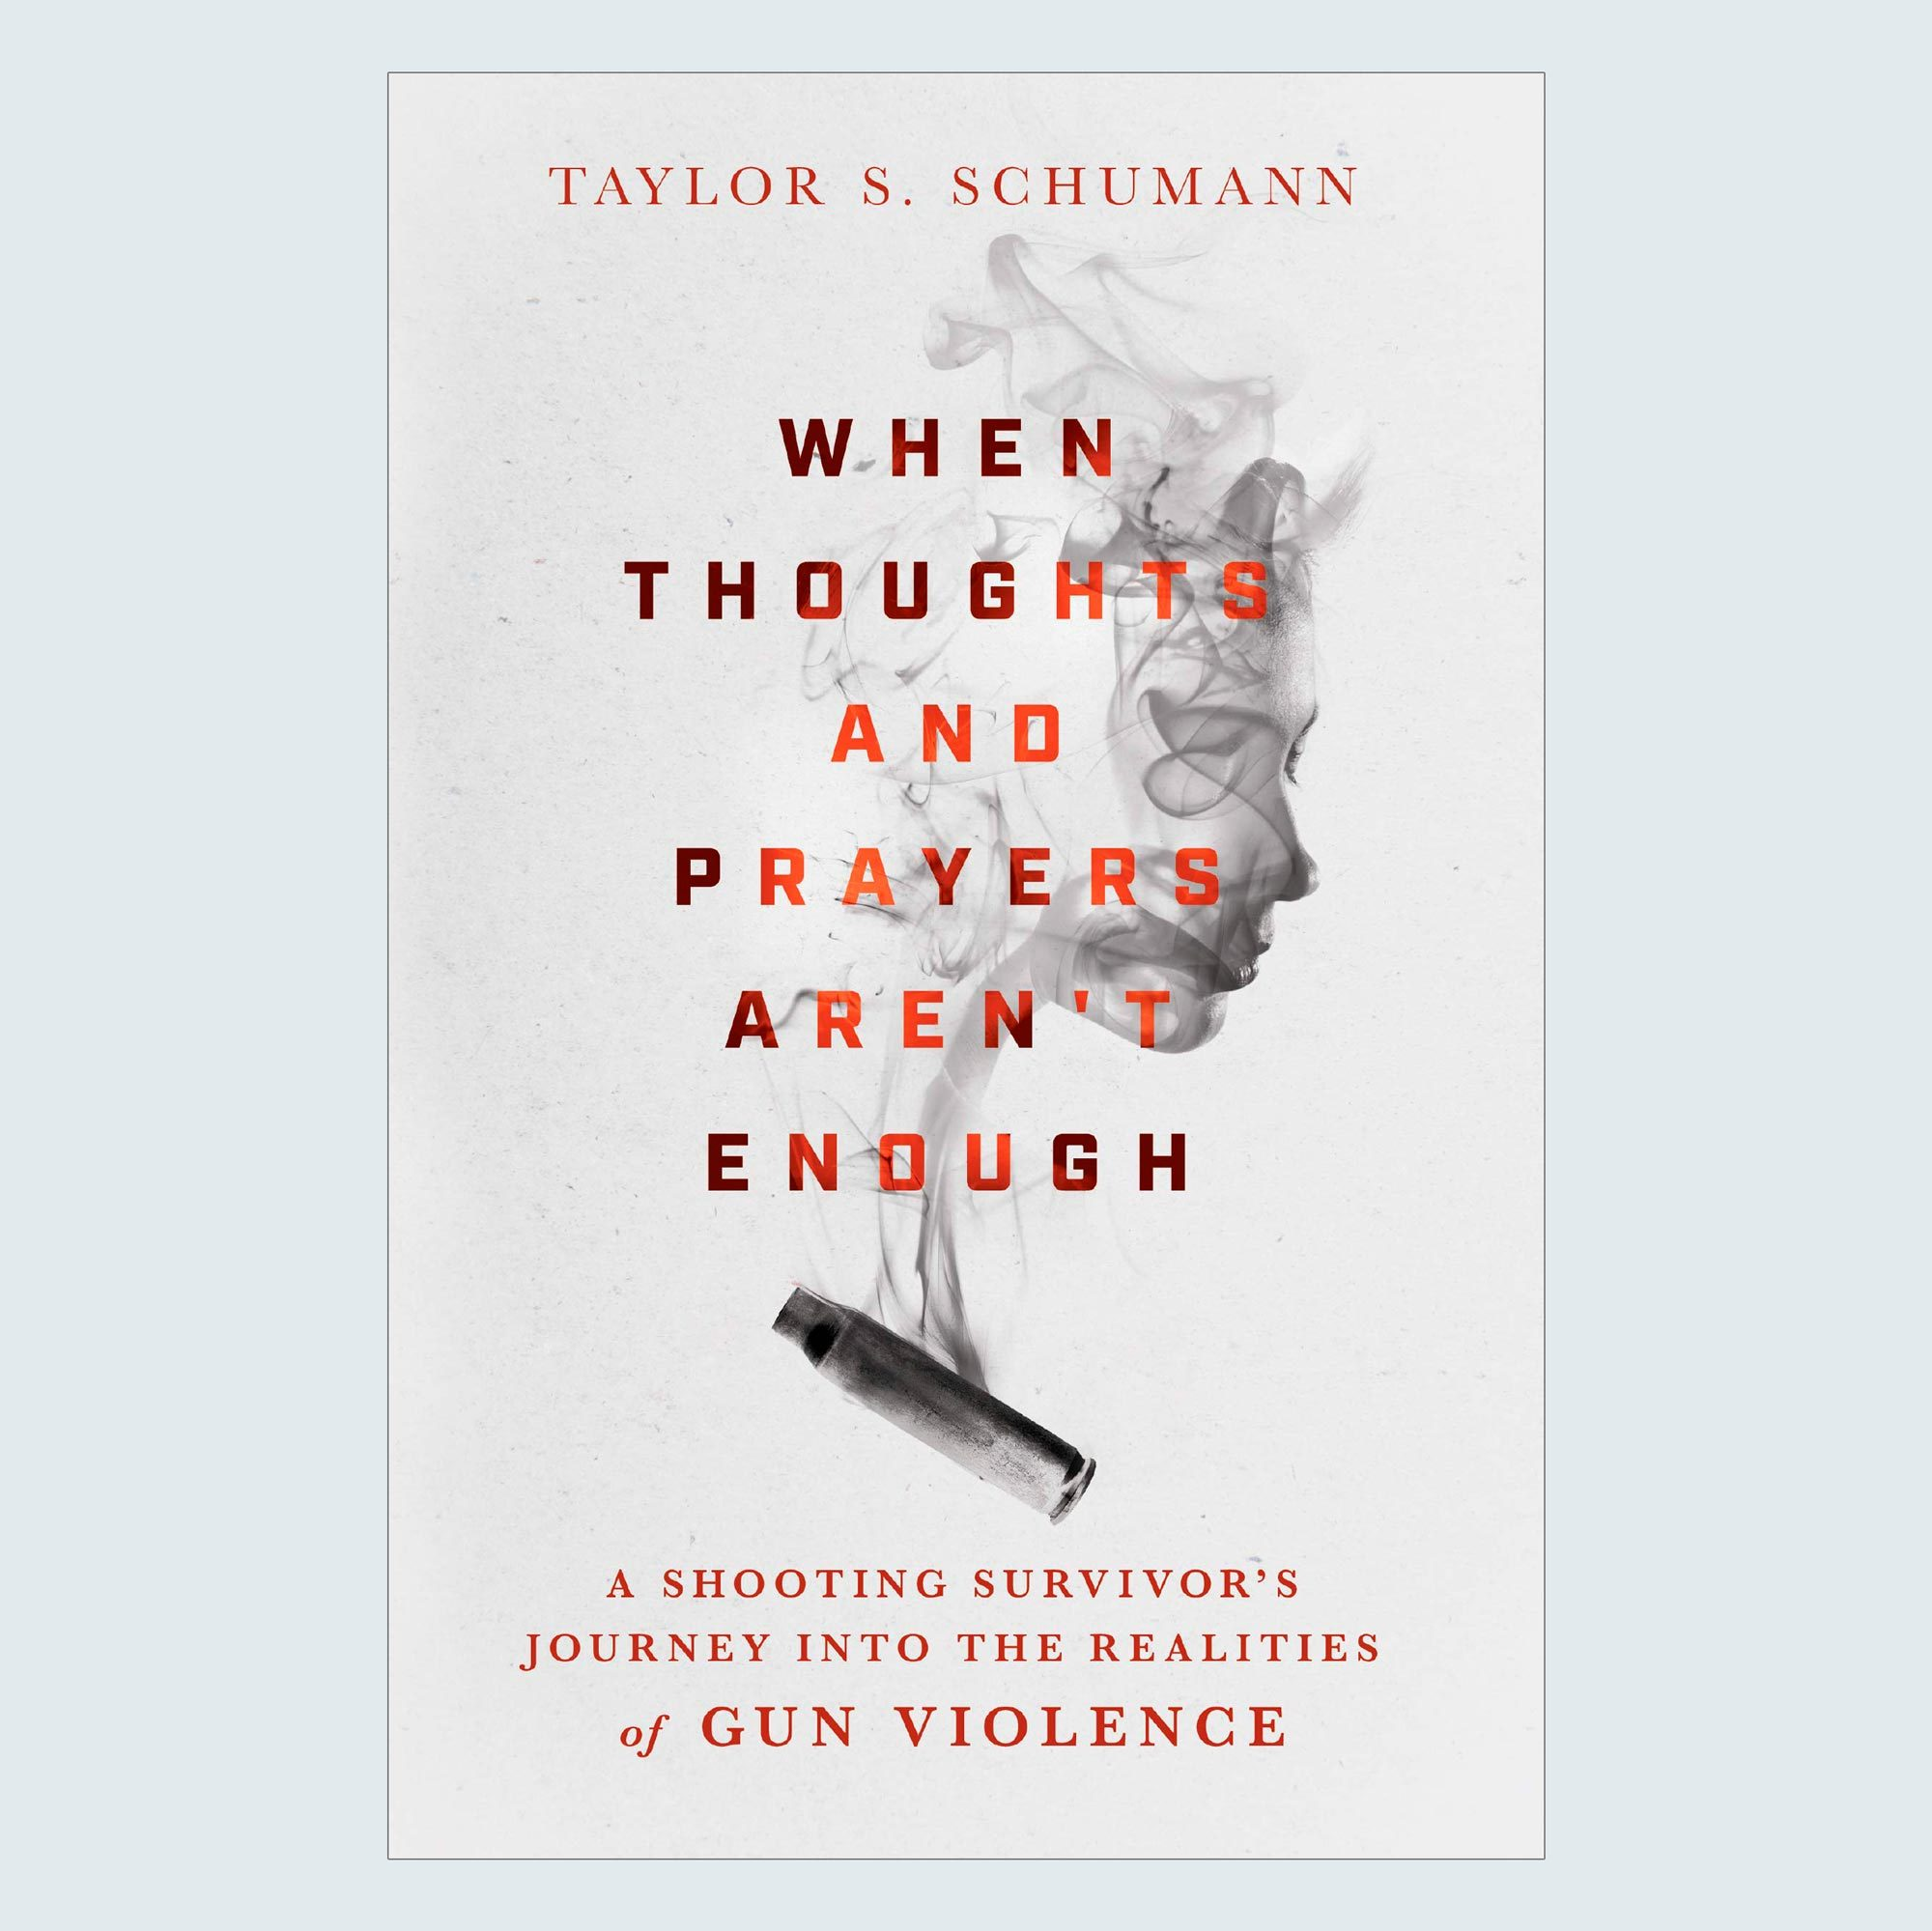 When Thoughts And Prayers Aren't Enough book cover